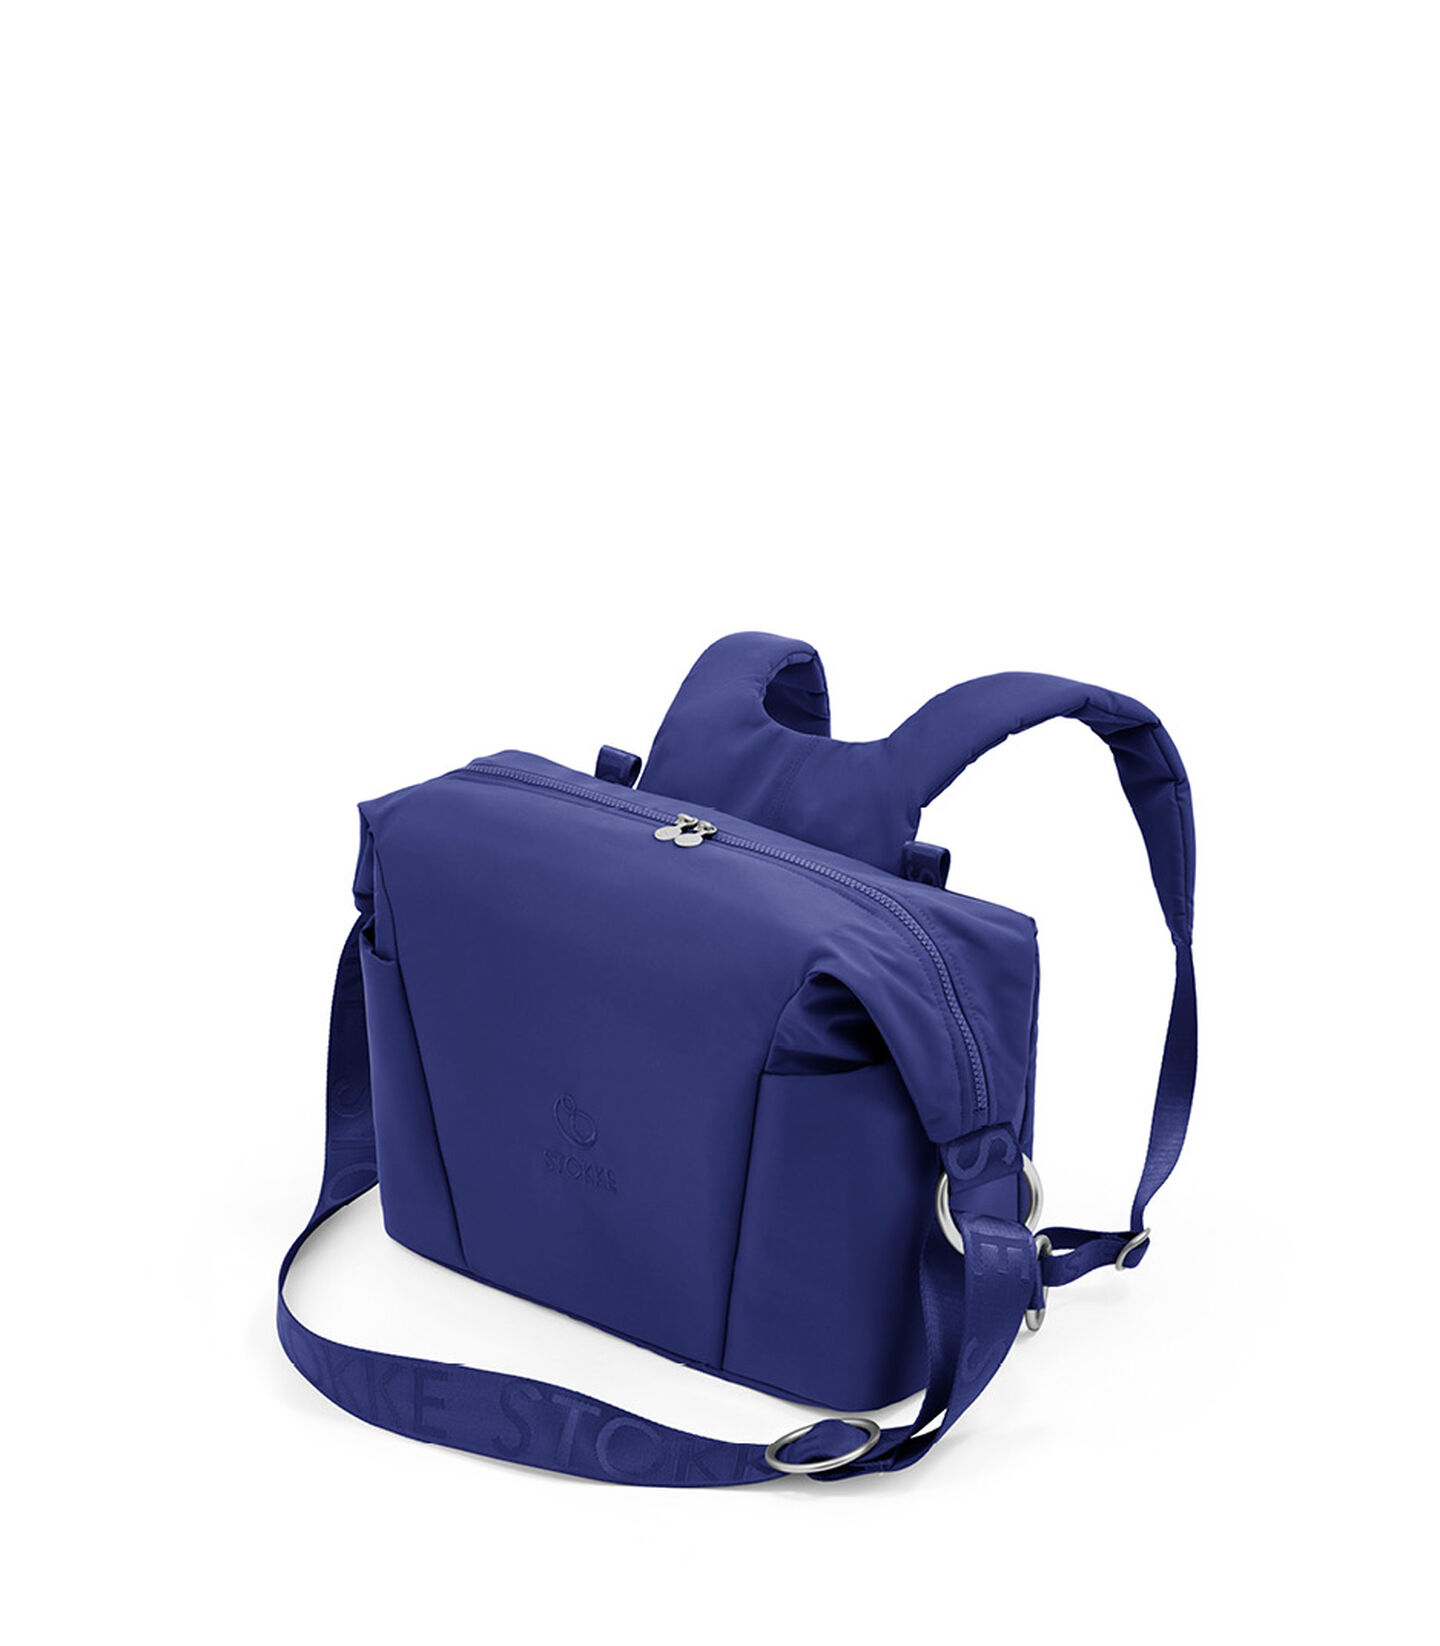 Stokke® Xplory® X Changing Bag Royal Blue. Accessories. view 1